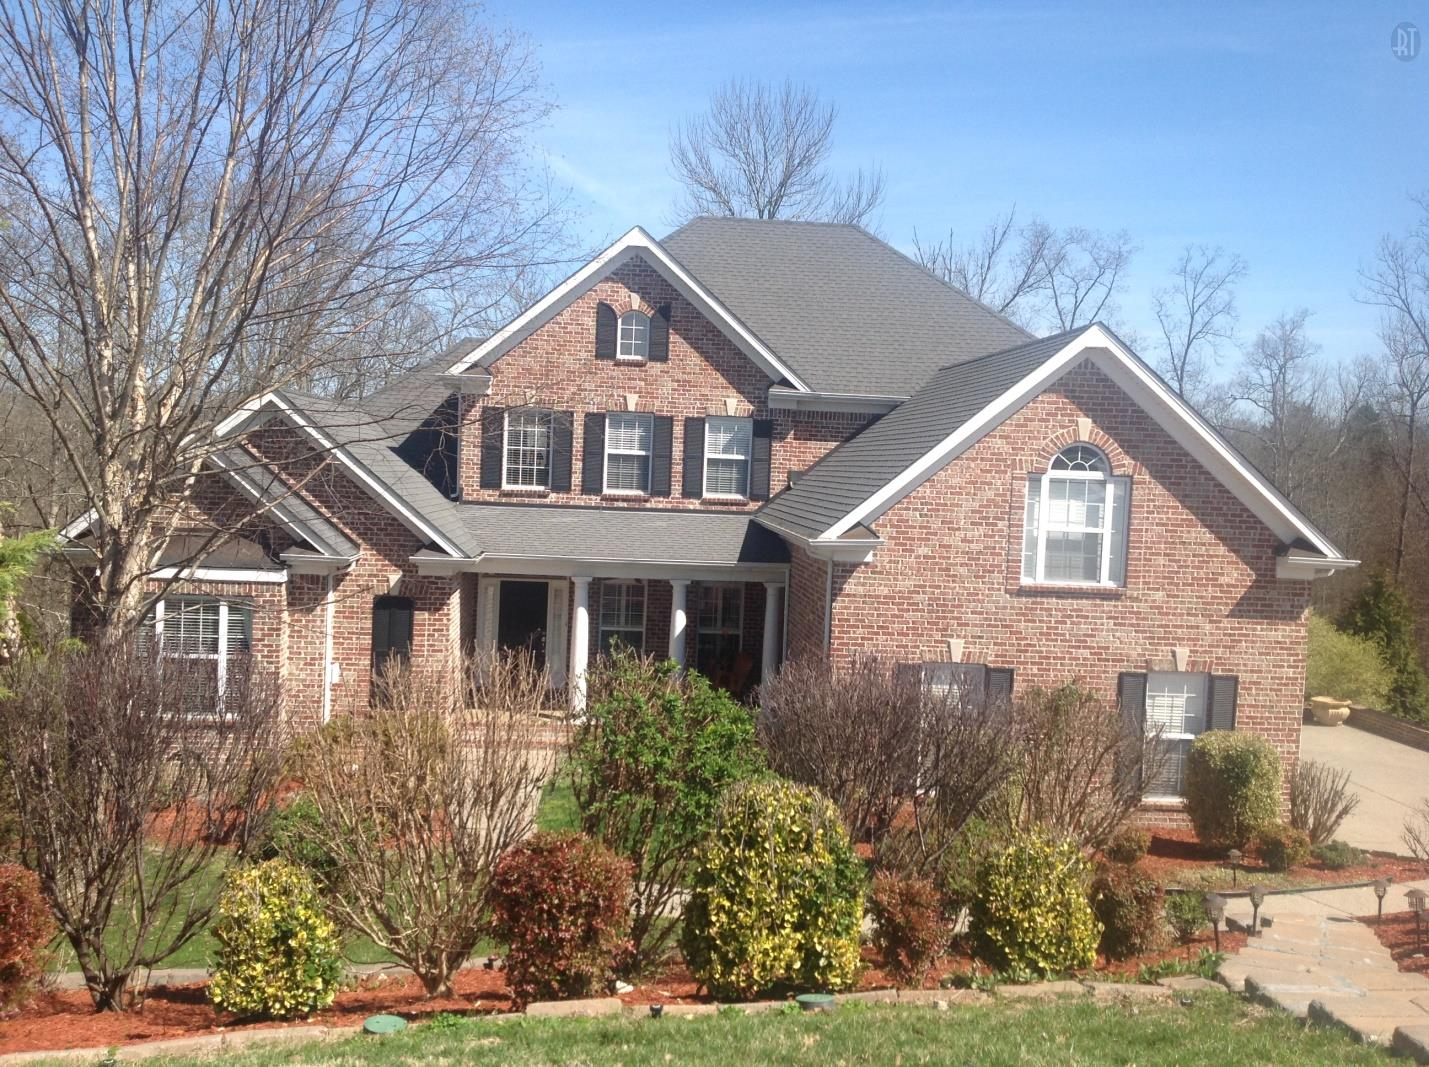 9716 Mountain Ash Ct, Brentwood, TN